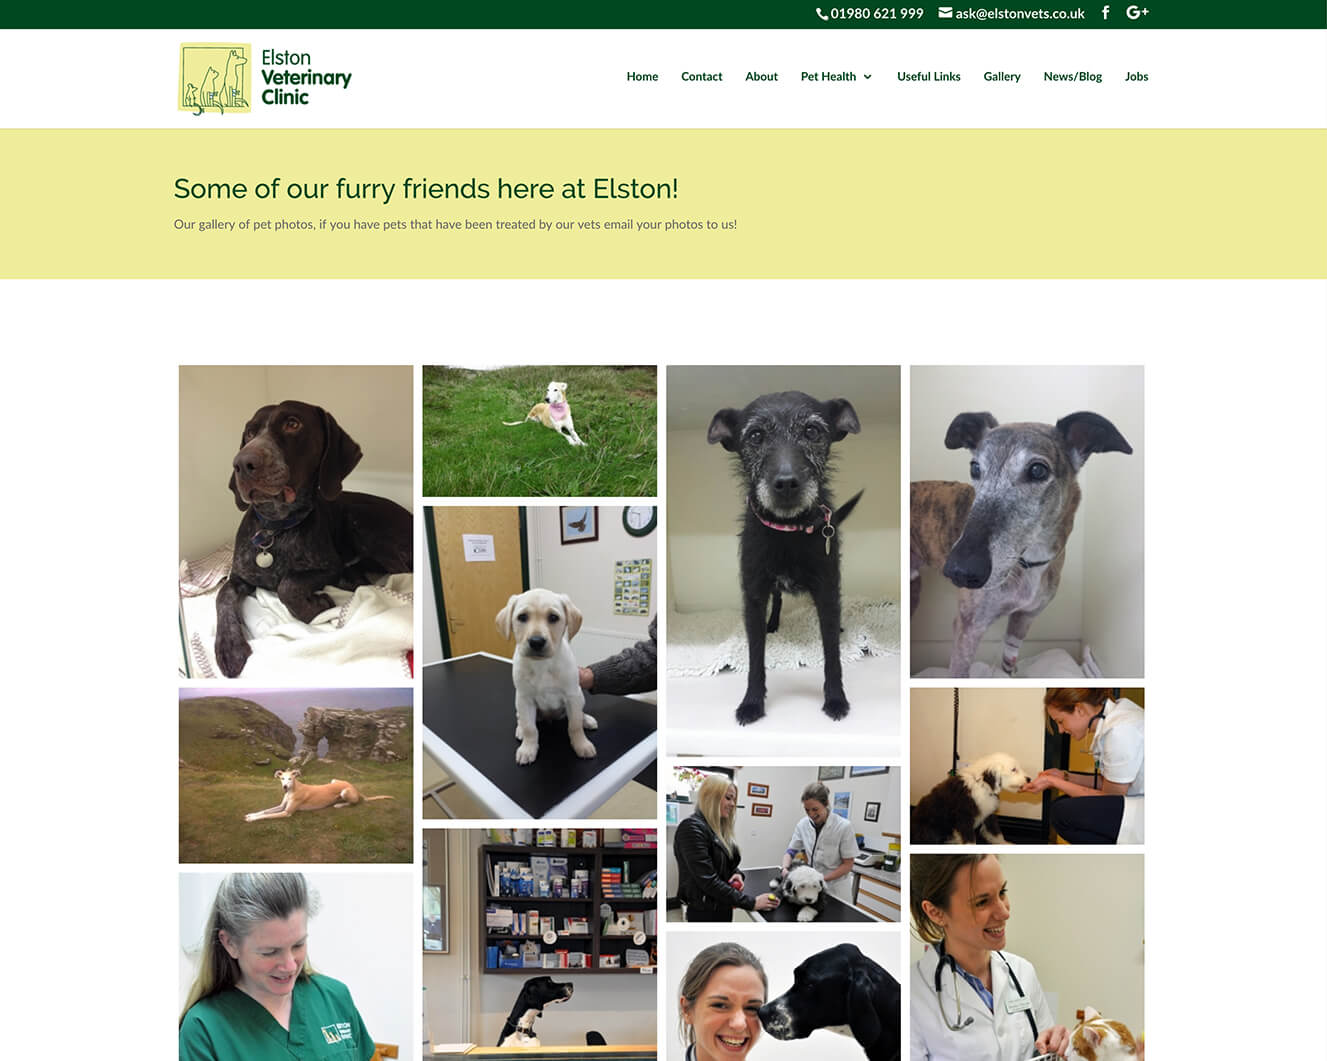 Veterinary website design for Elston Vets: Image gallery page